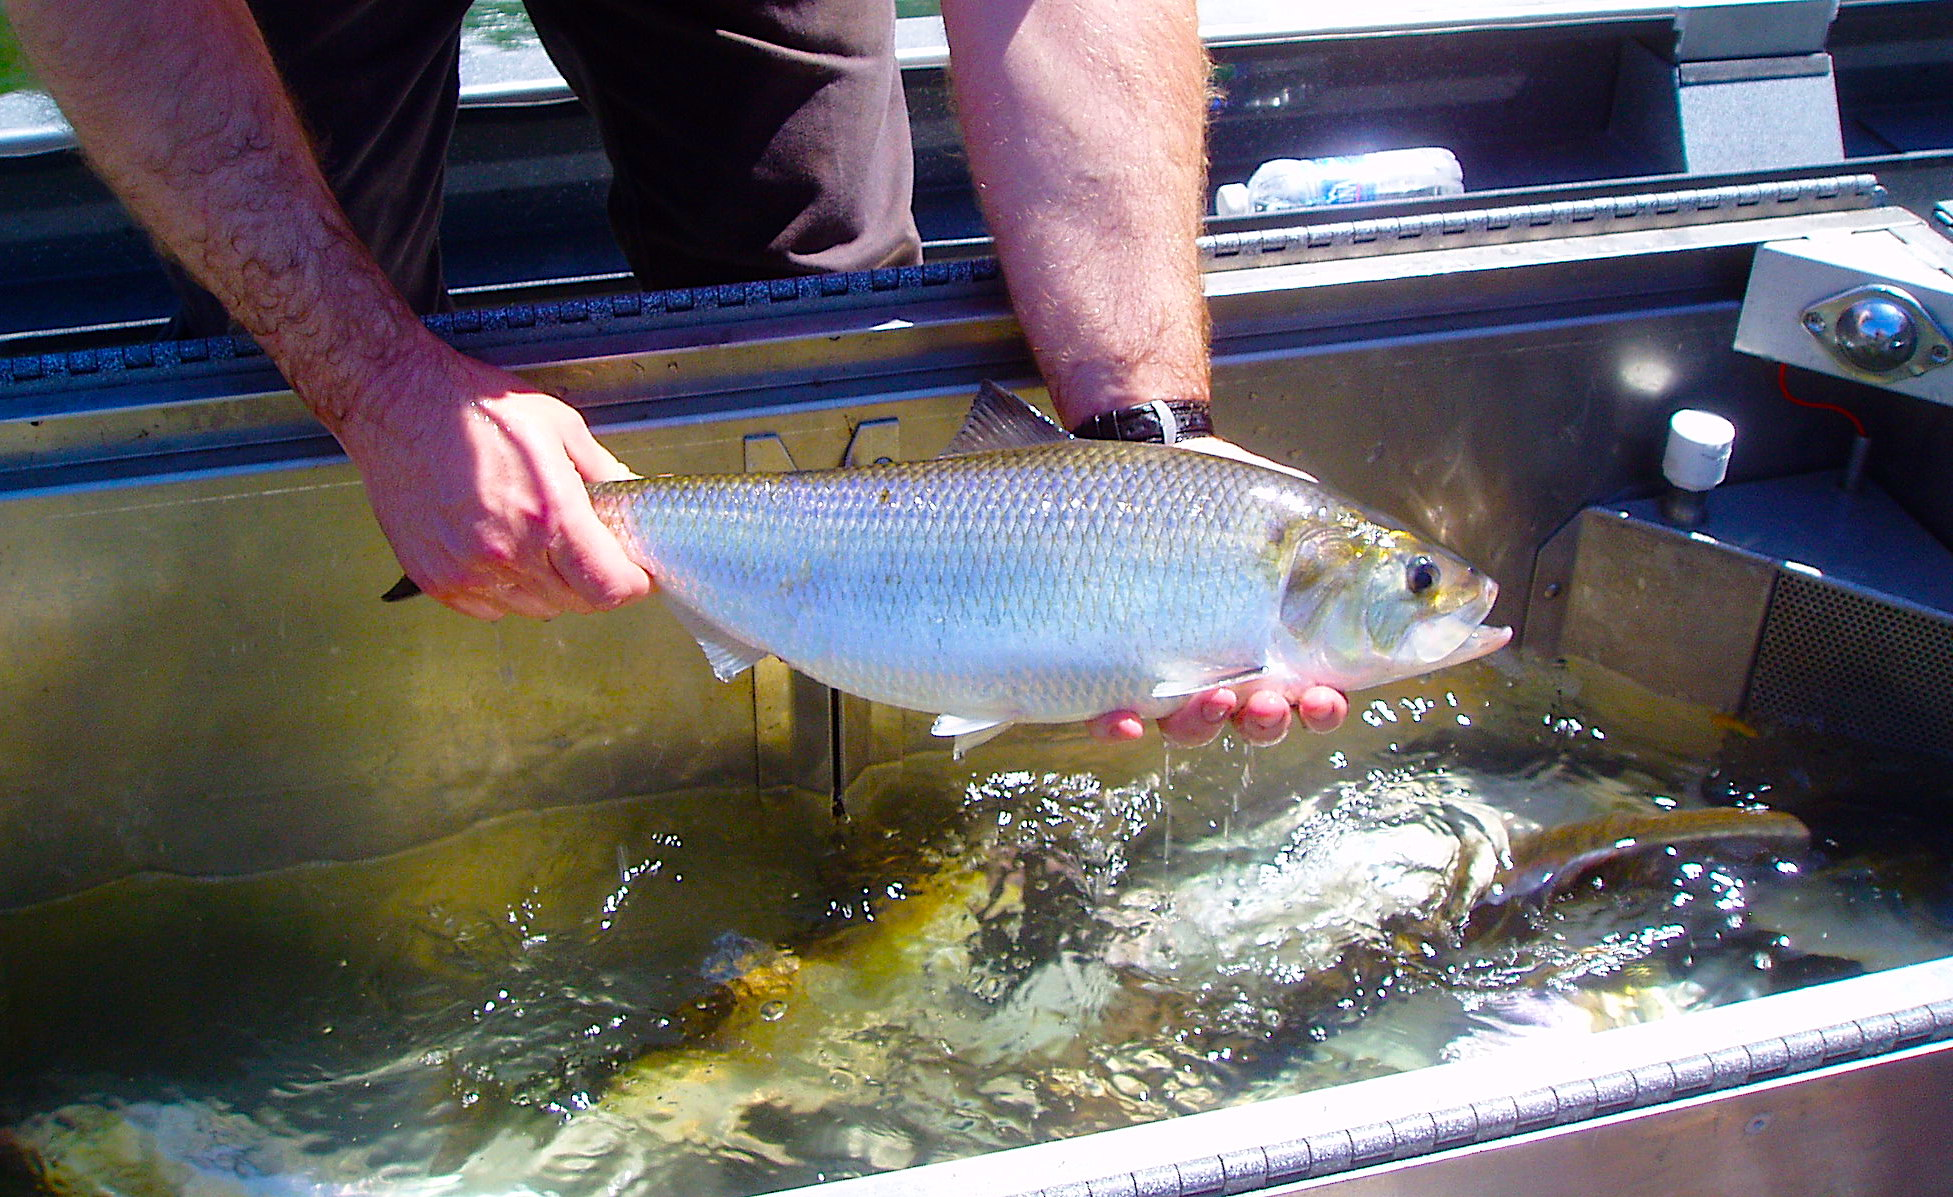 Will warmer temperatures lead to earlier-than-normal spawning in American shad? Credit: US Fish & Wildlife Service